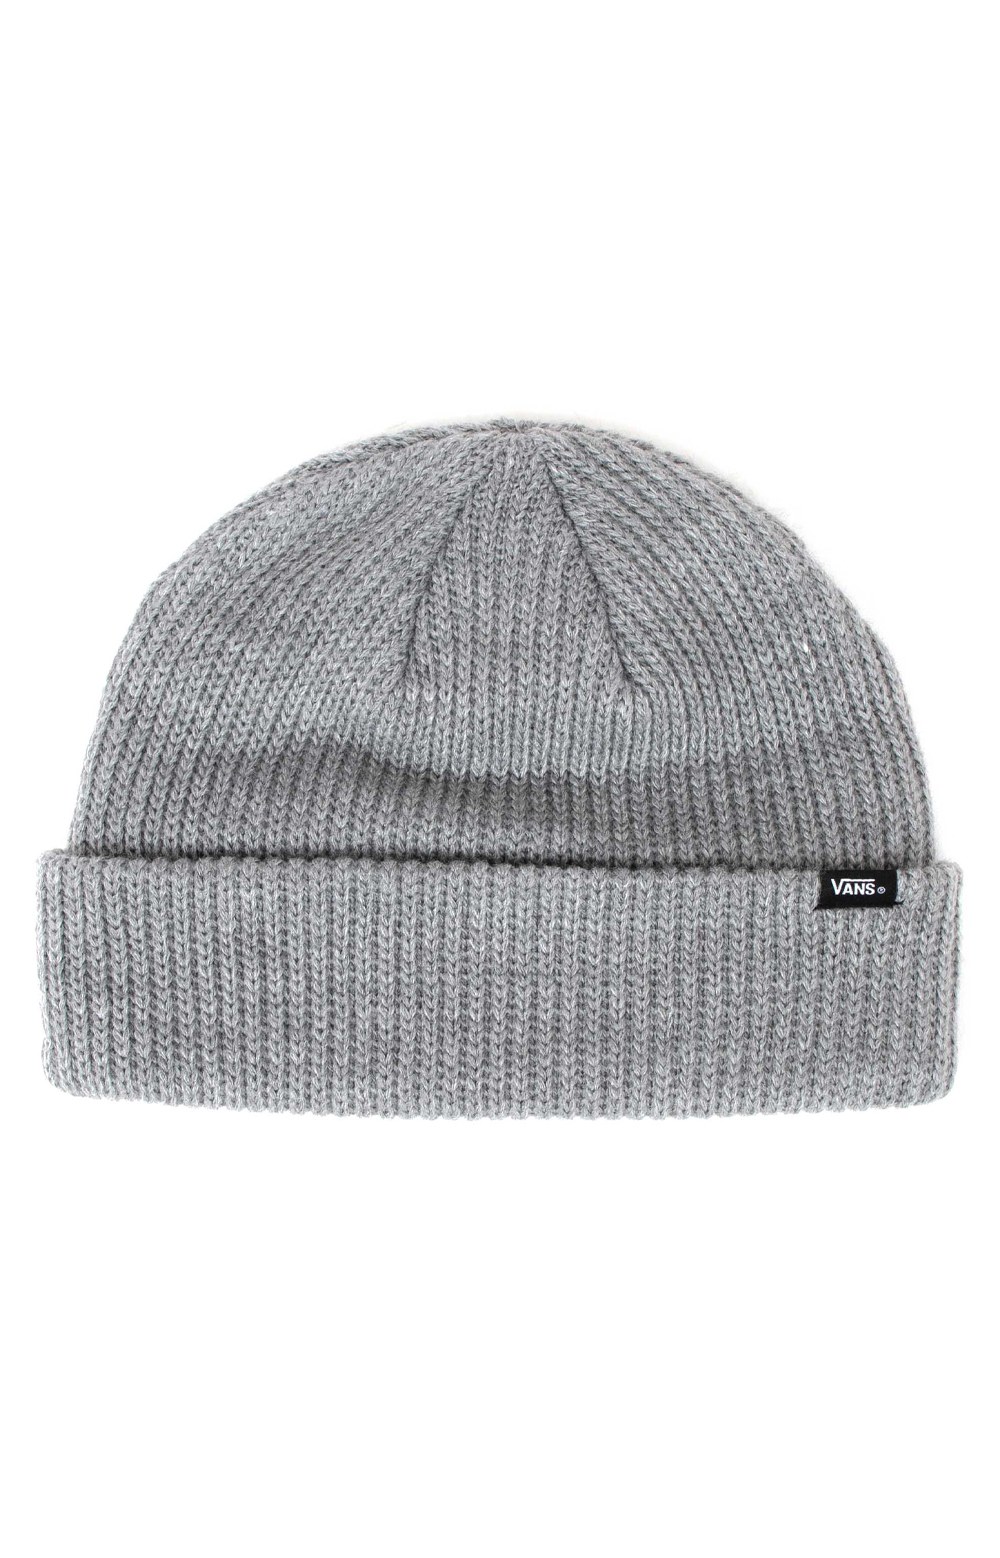 Core Basics Beanie - Heather Grey